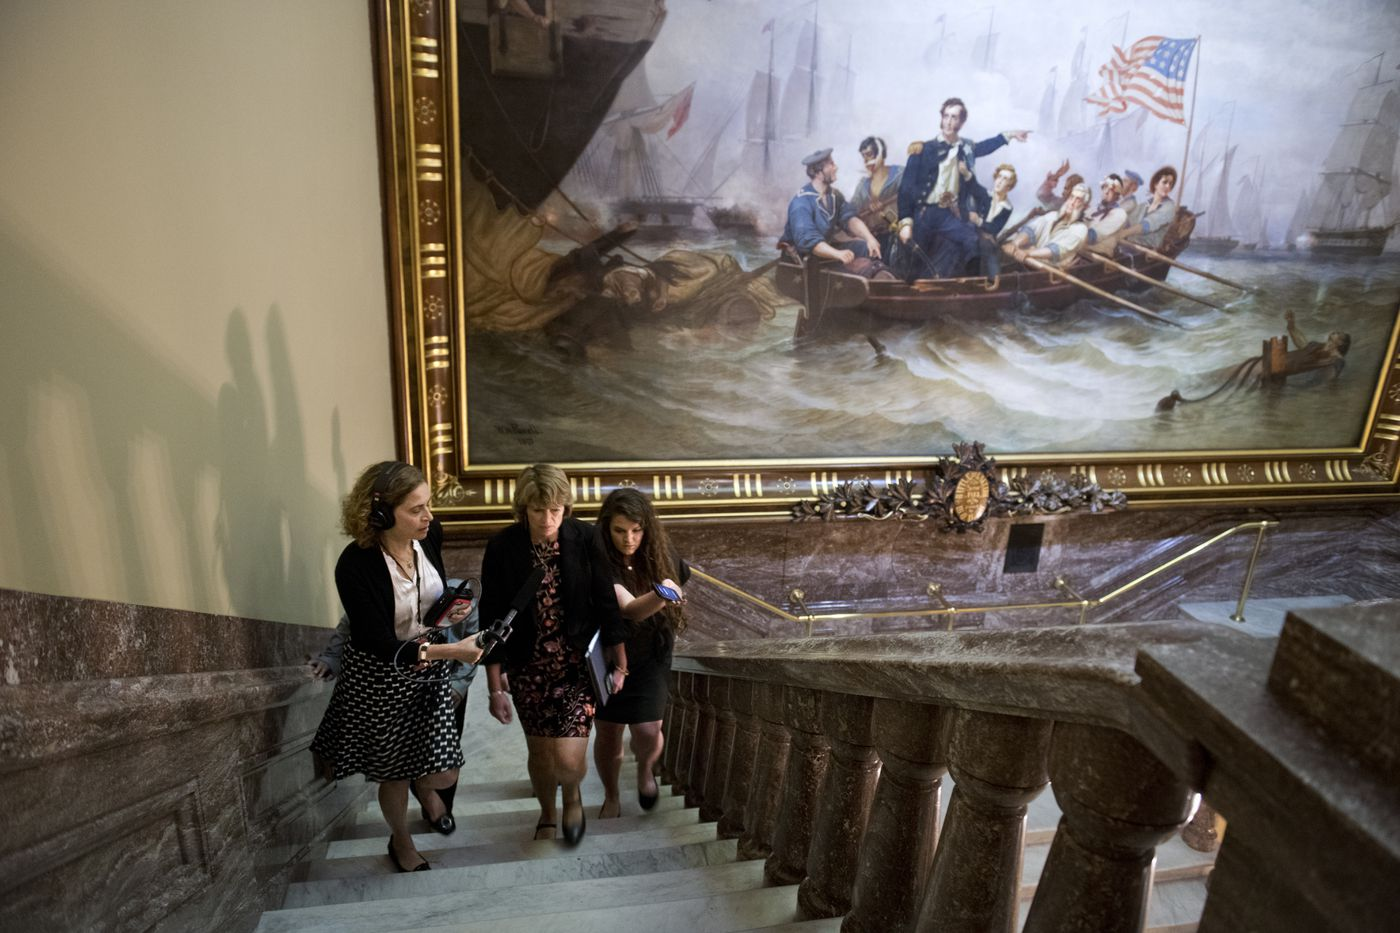 Sen. Lisa Murkowski, center, answers questions from Alaska public radio reporter Liz Ruskin, left, in a Capitol stairwell on June 18, 2019. Murkowski's press secretary Hannah Ray is at right. (Marc Lester / ADN)